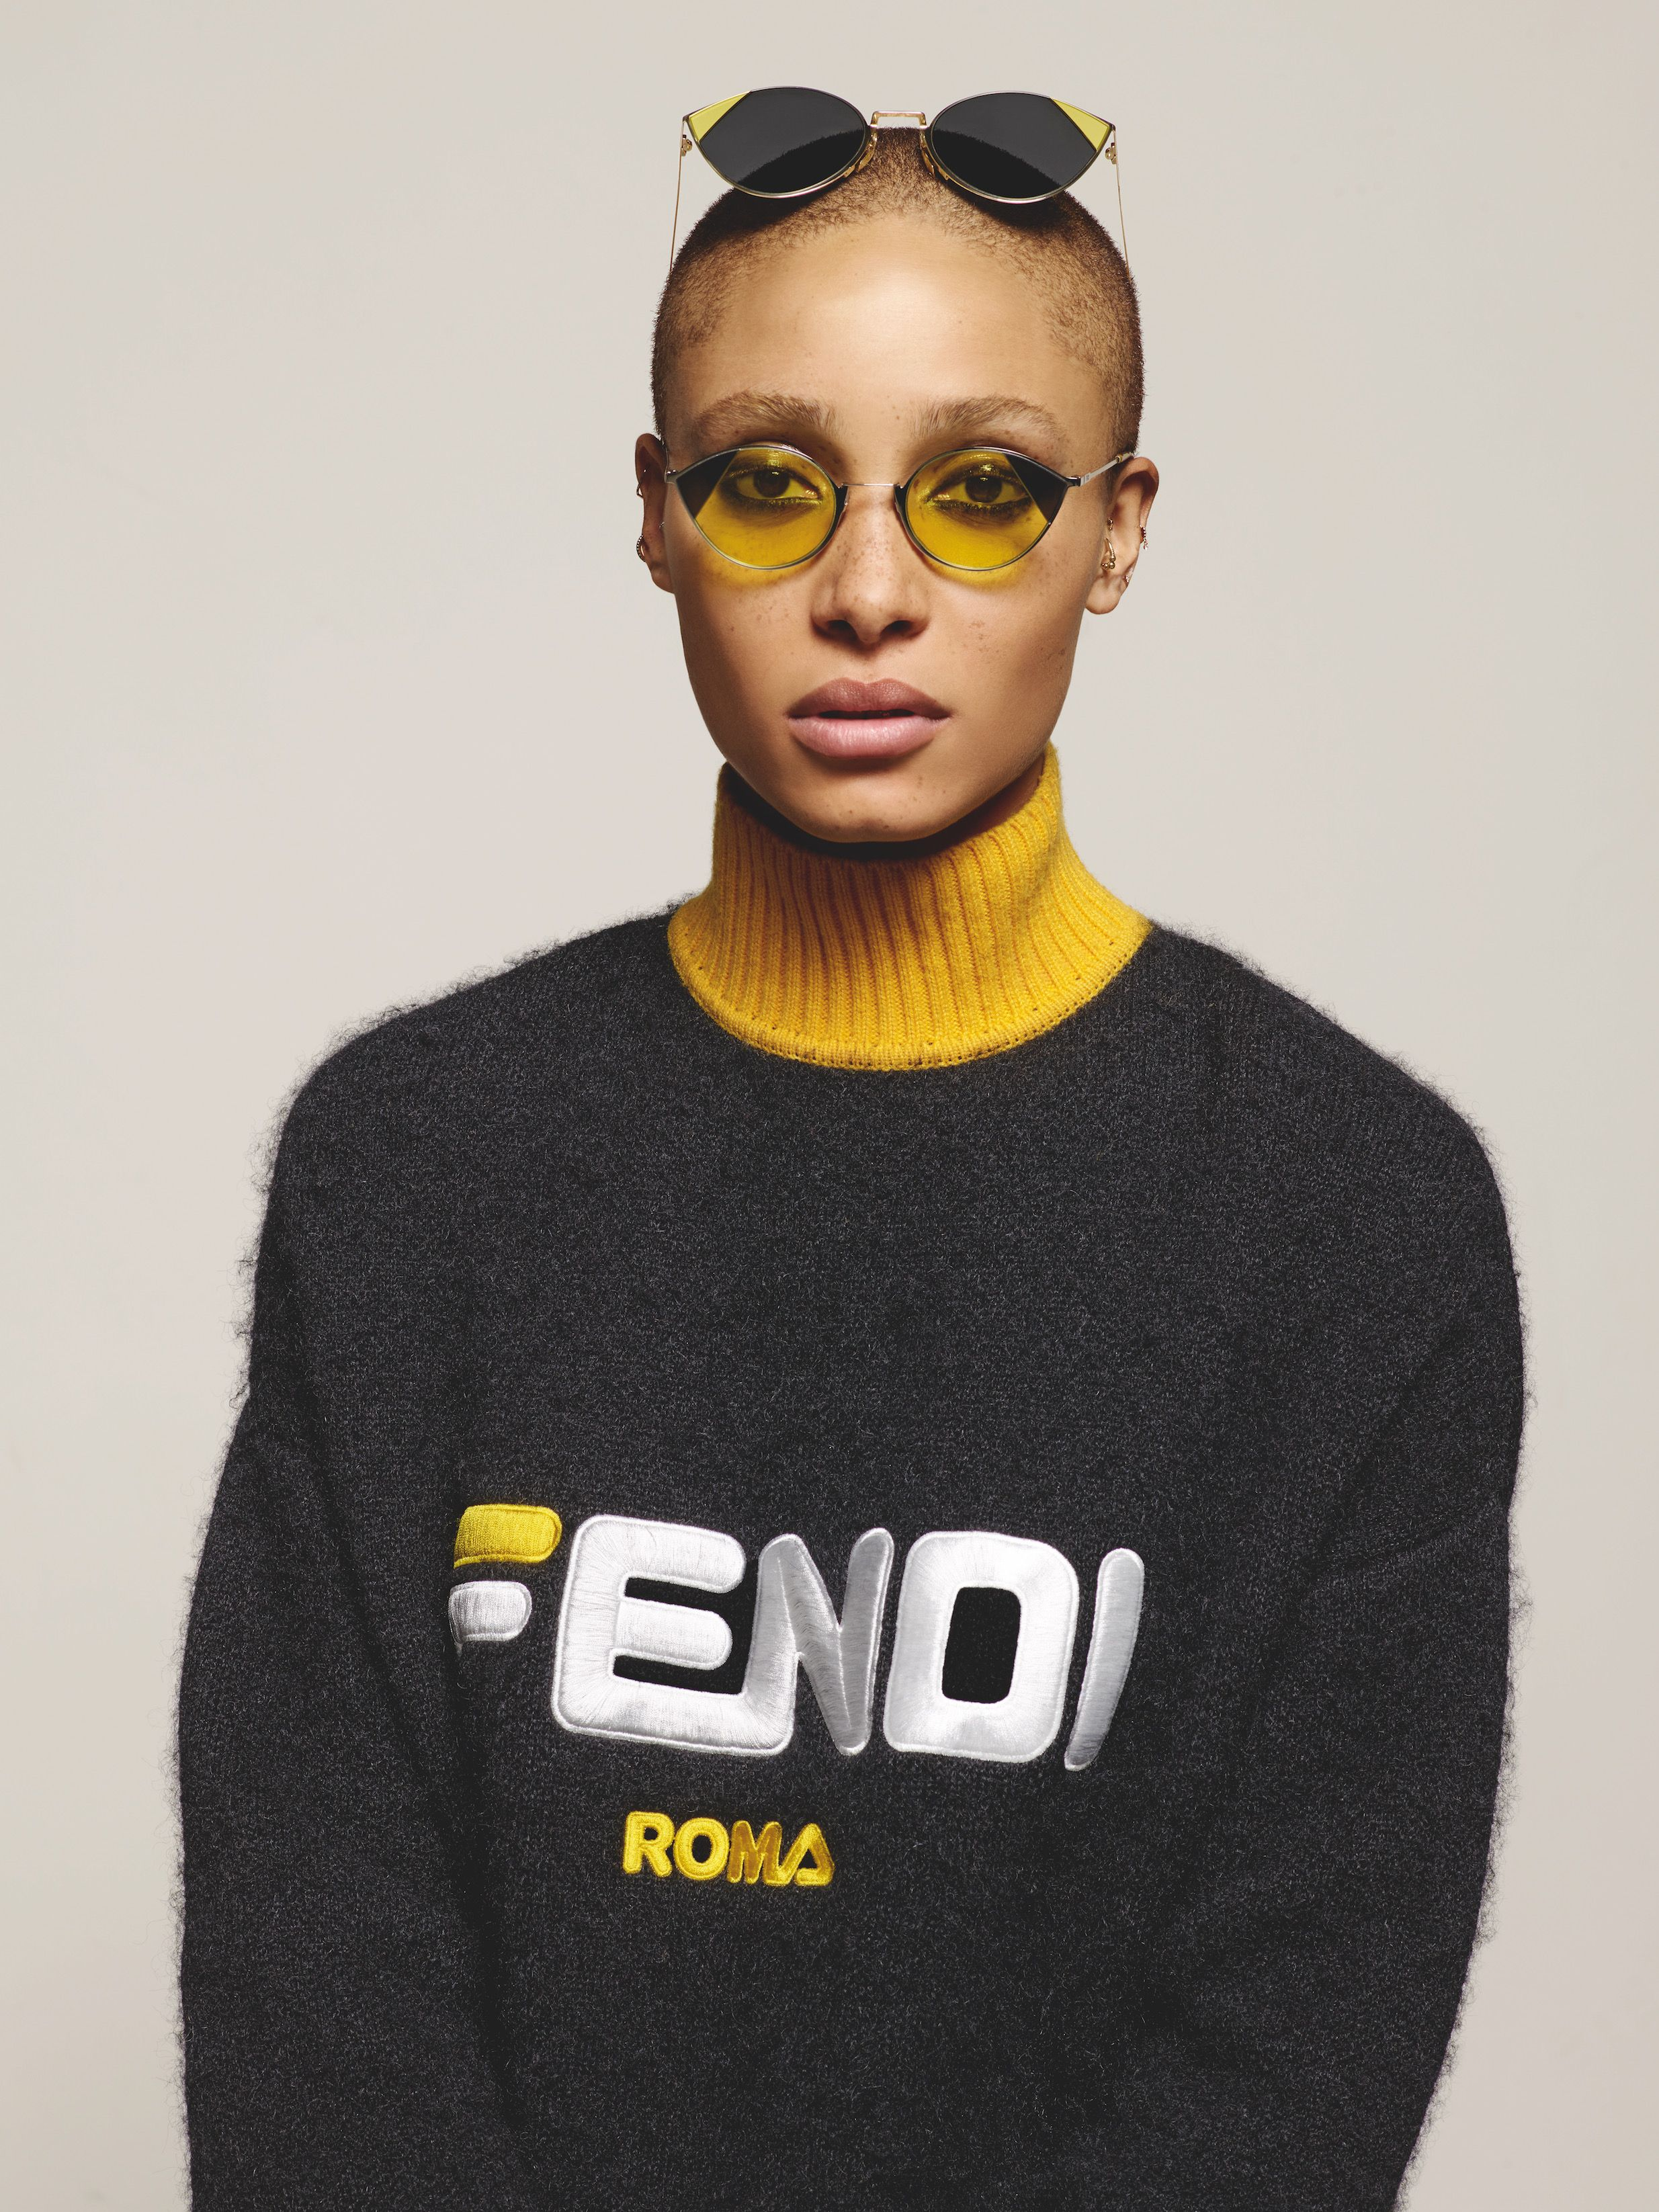 6ad9c01c8c6 Explore the FW18-19 Advertising Campaign photographed by Karl Lagerfeld  Karl Lagerfeld Fendi